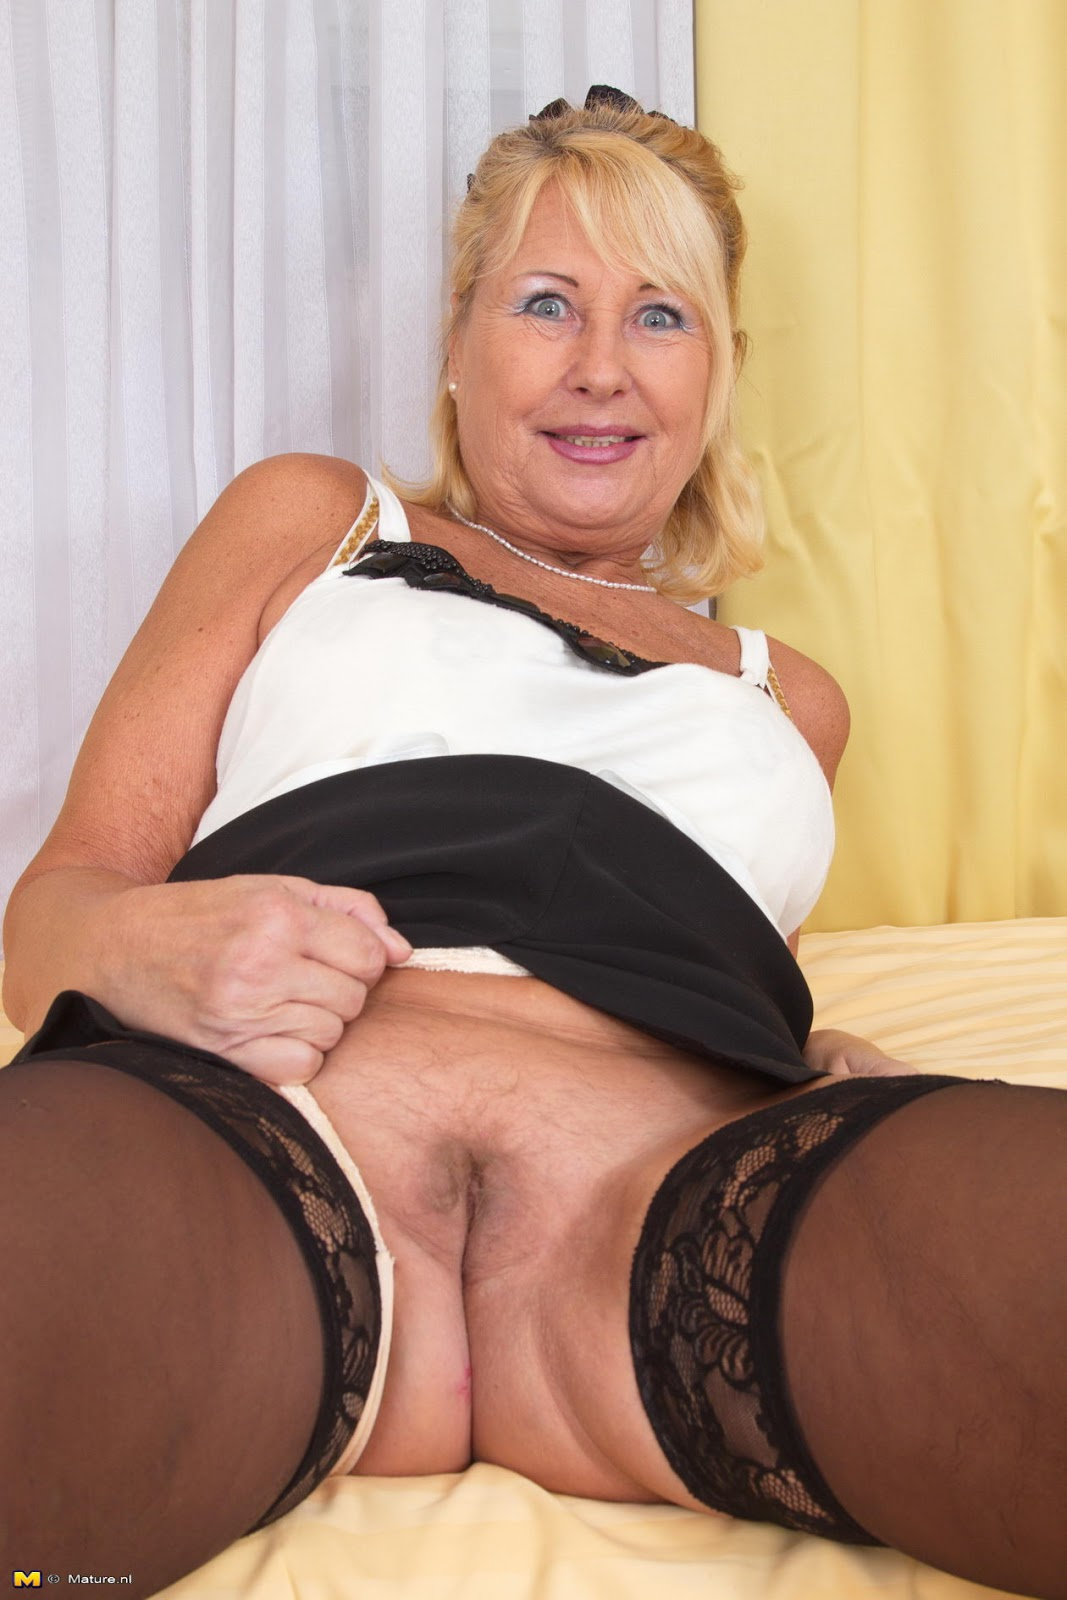 Like this mature porn women images doesn't give